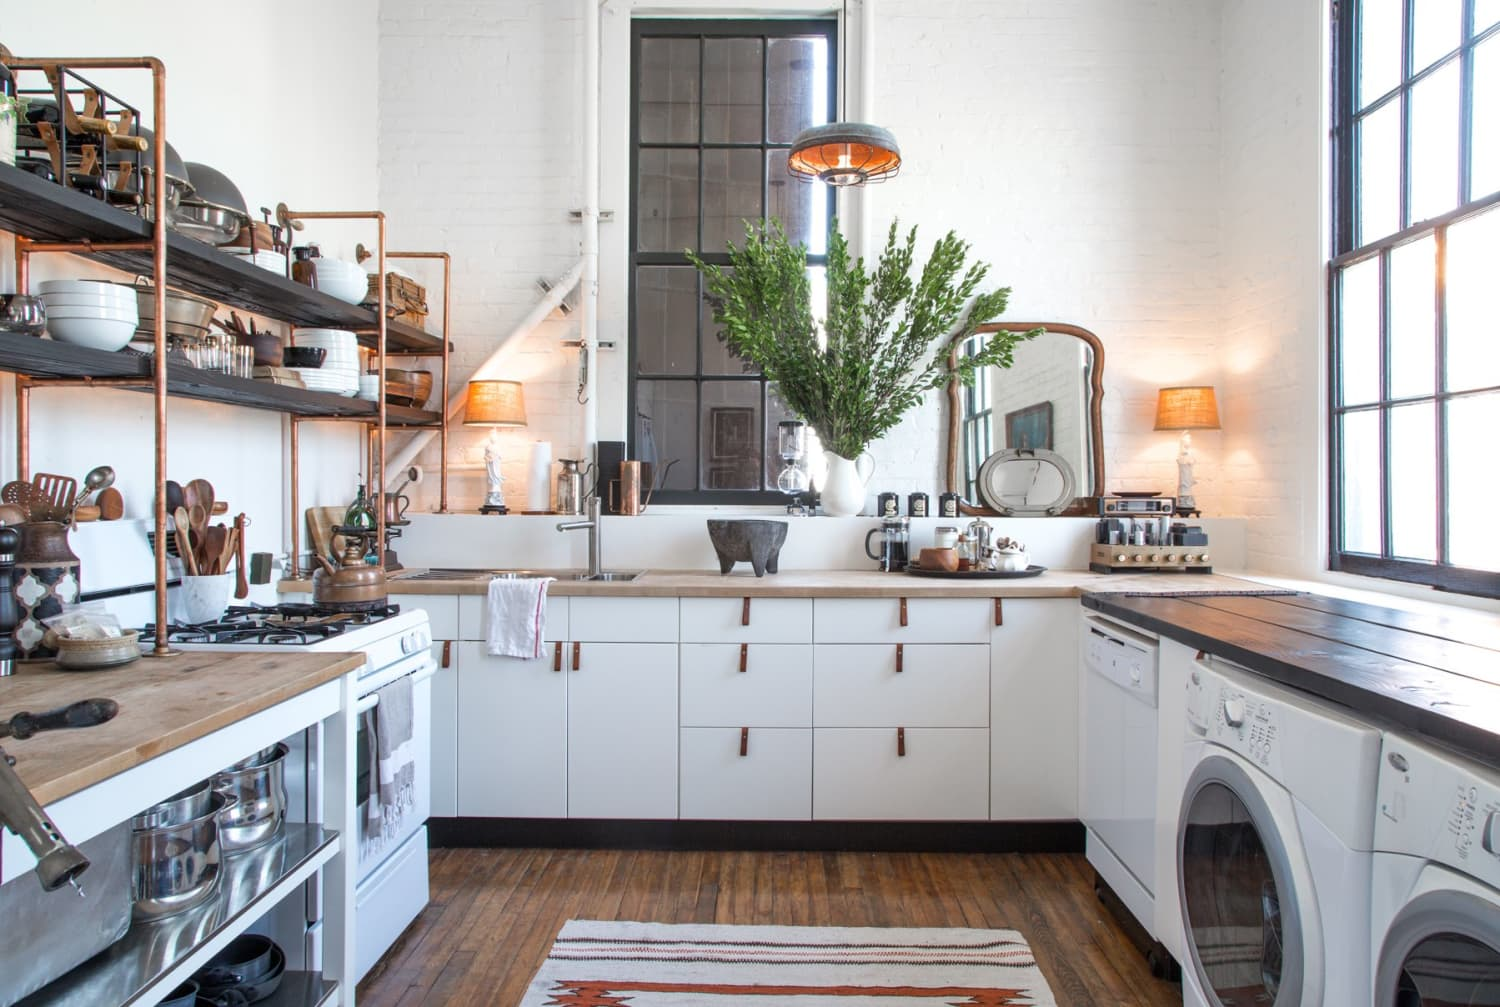 5 Kitchen and Living Room Design Rules You Should Always Follow